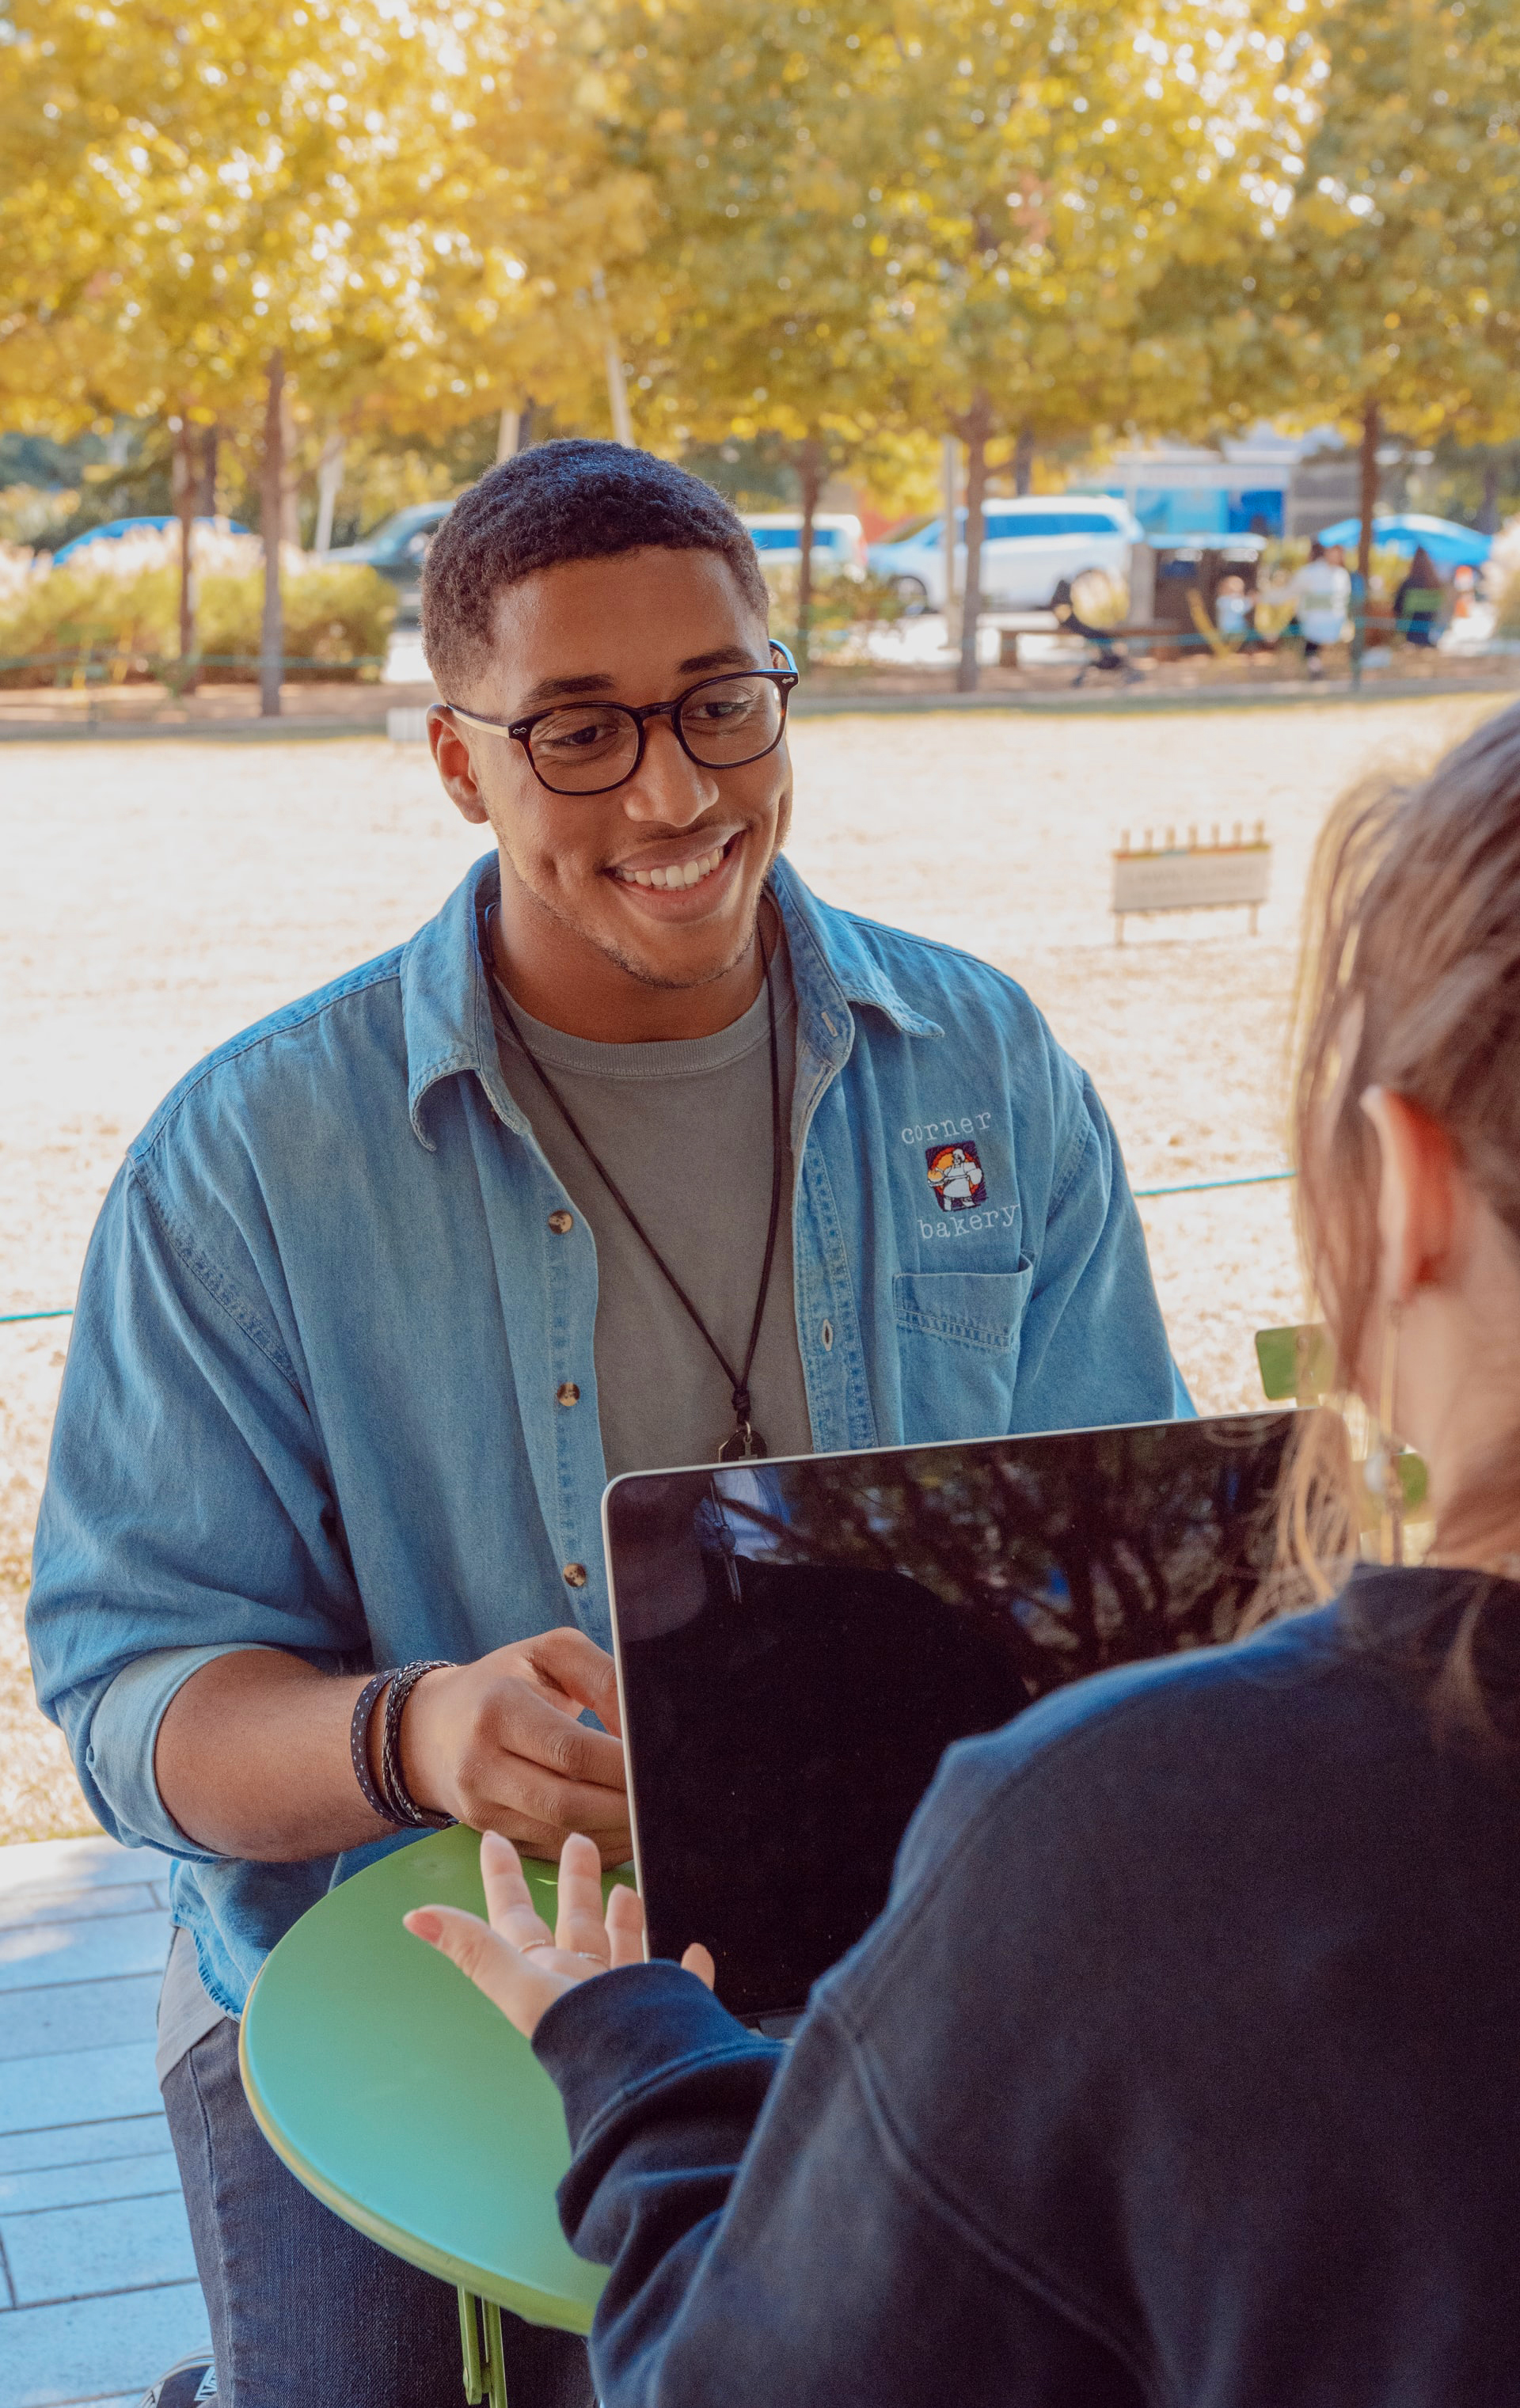 A man smiling while sitting at a table  in a park. He is interacting with a woman with a laptop in front of her.